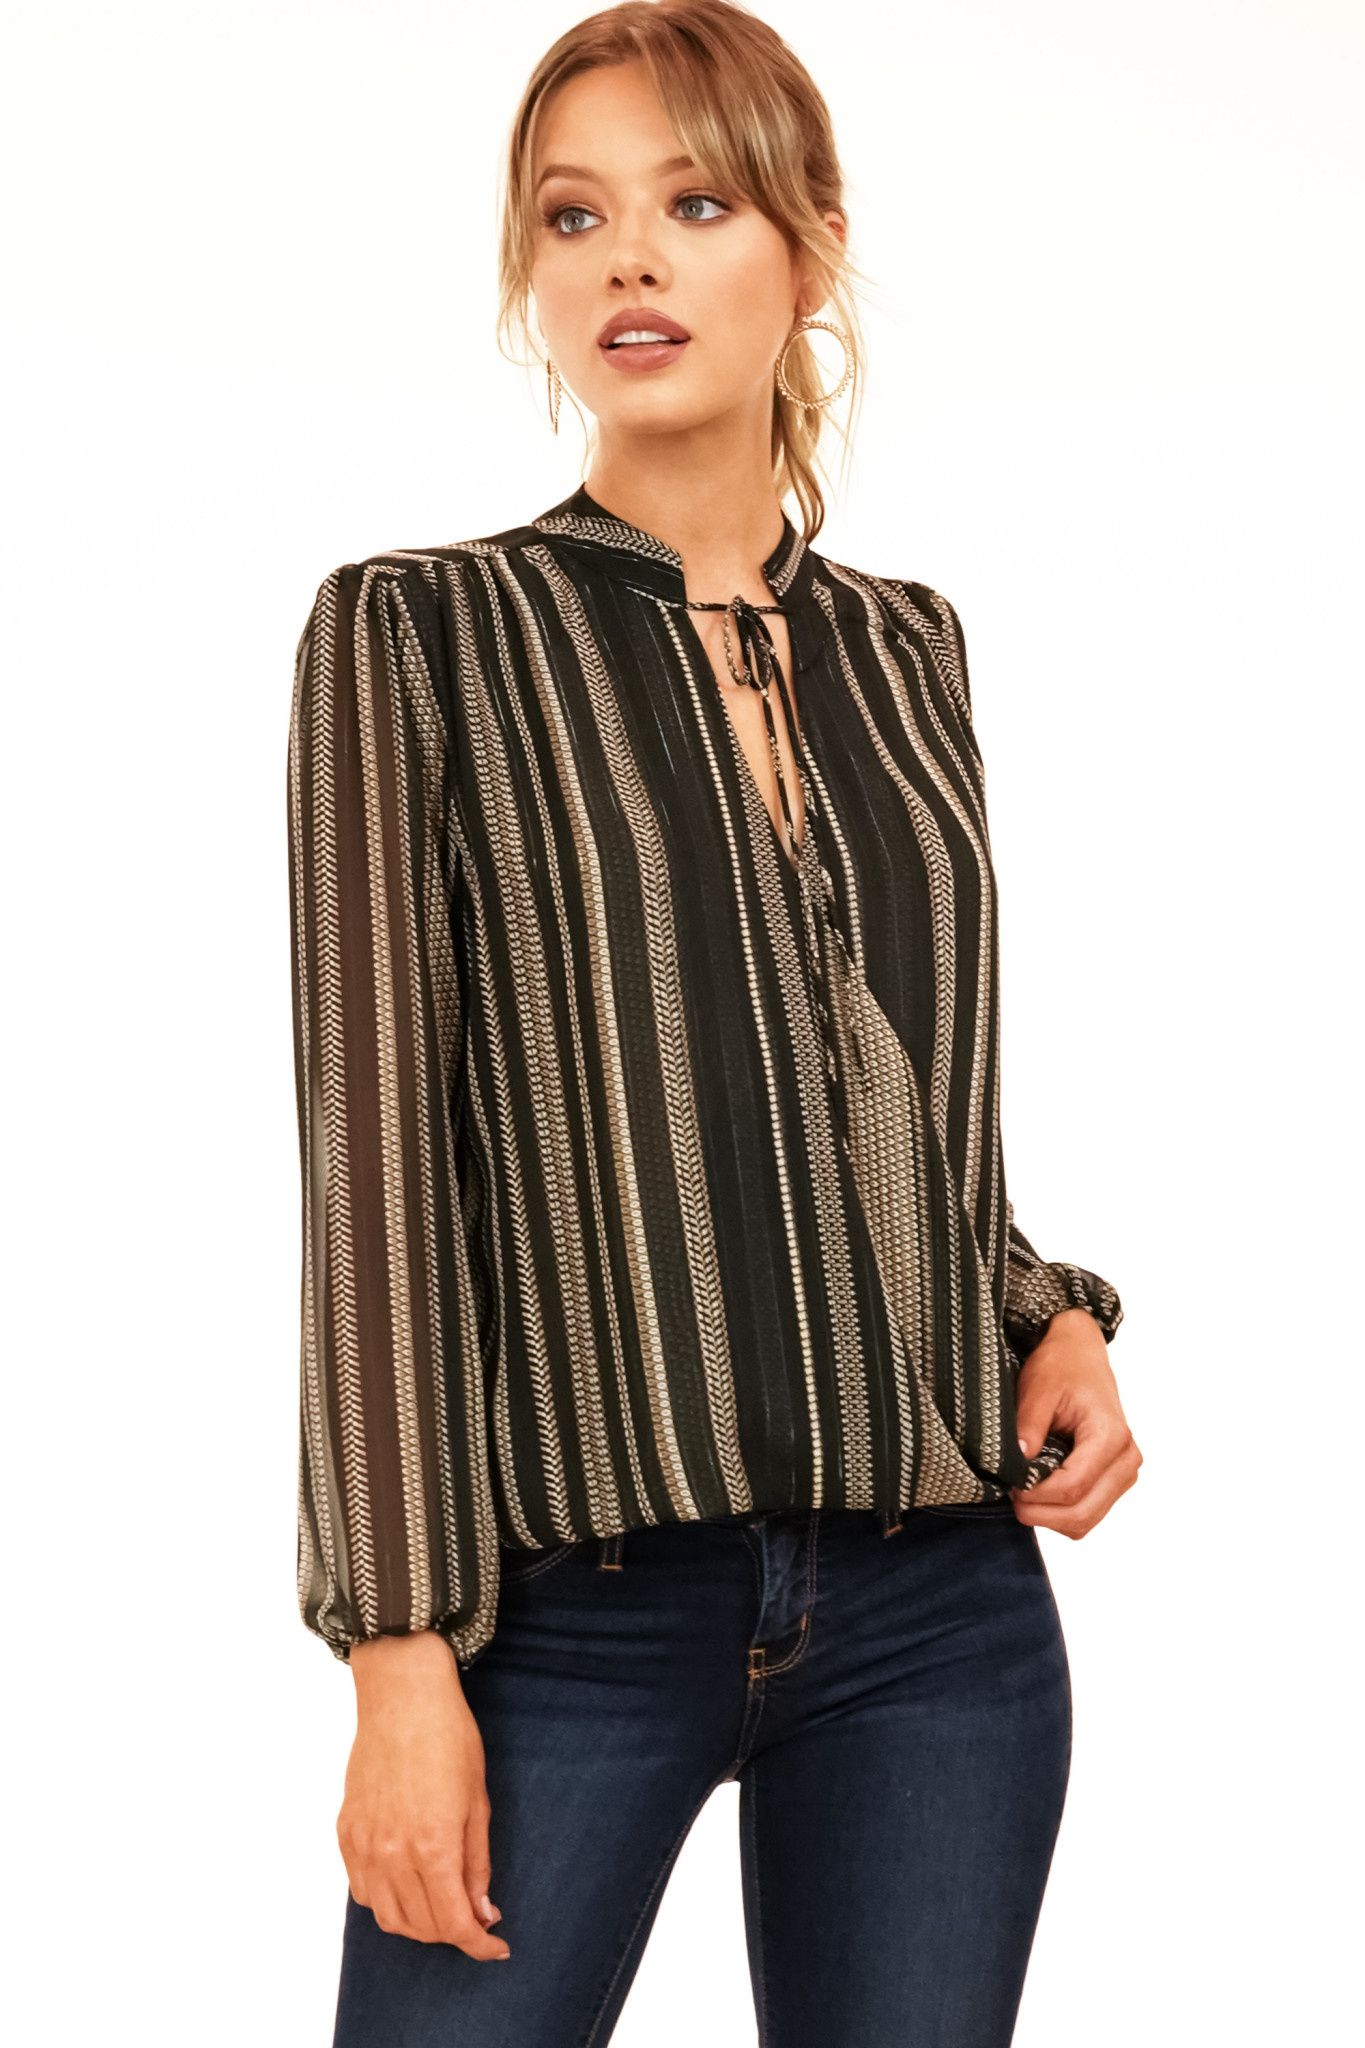 Chiffon Surplus Top